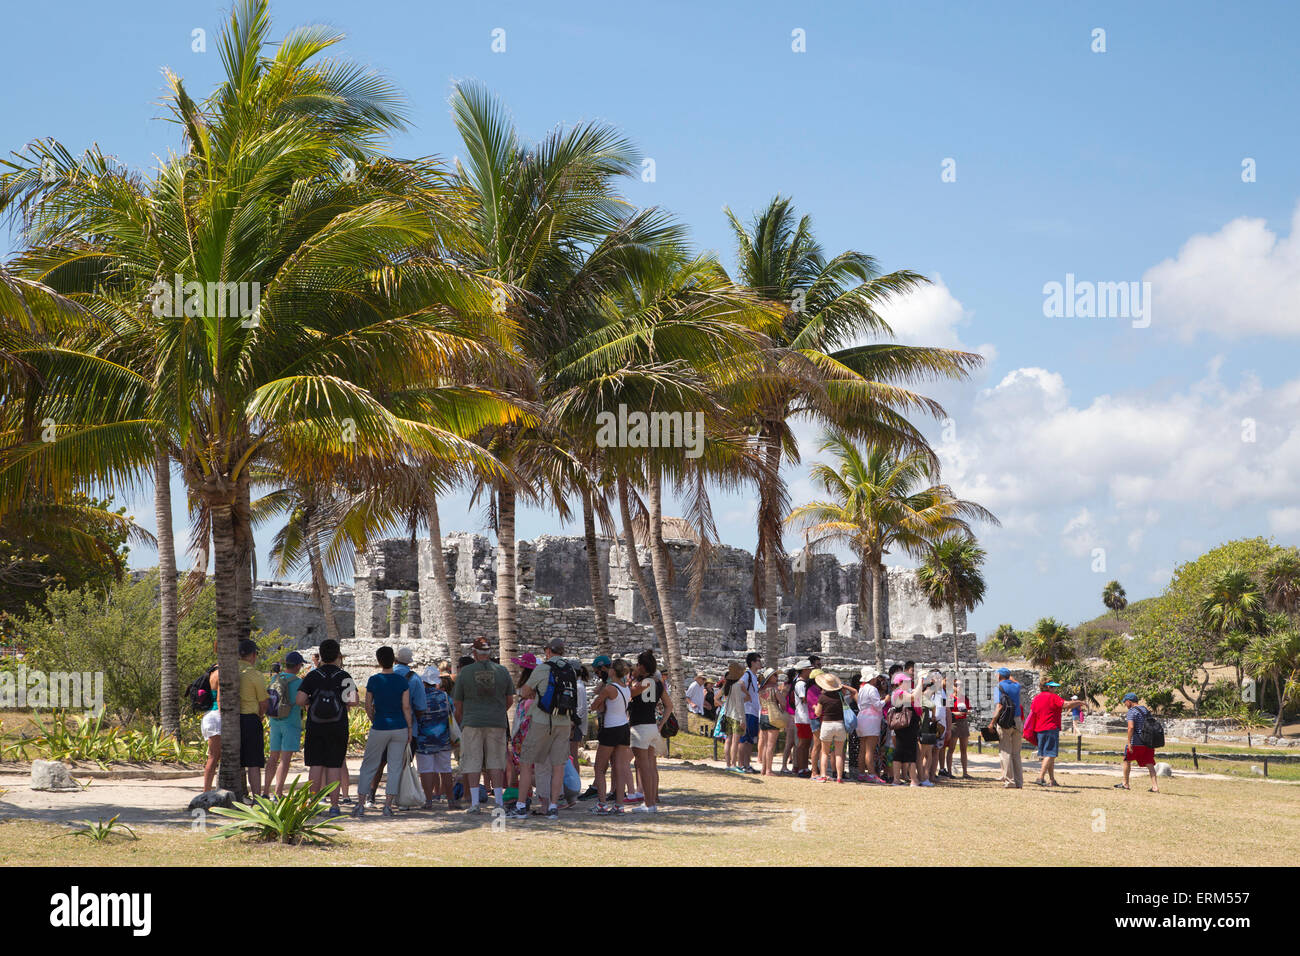 Tourists standing in the shade of palm trees on a hot day during guided tours in the walled Mayan city of Tulum, Stock Photo